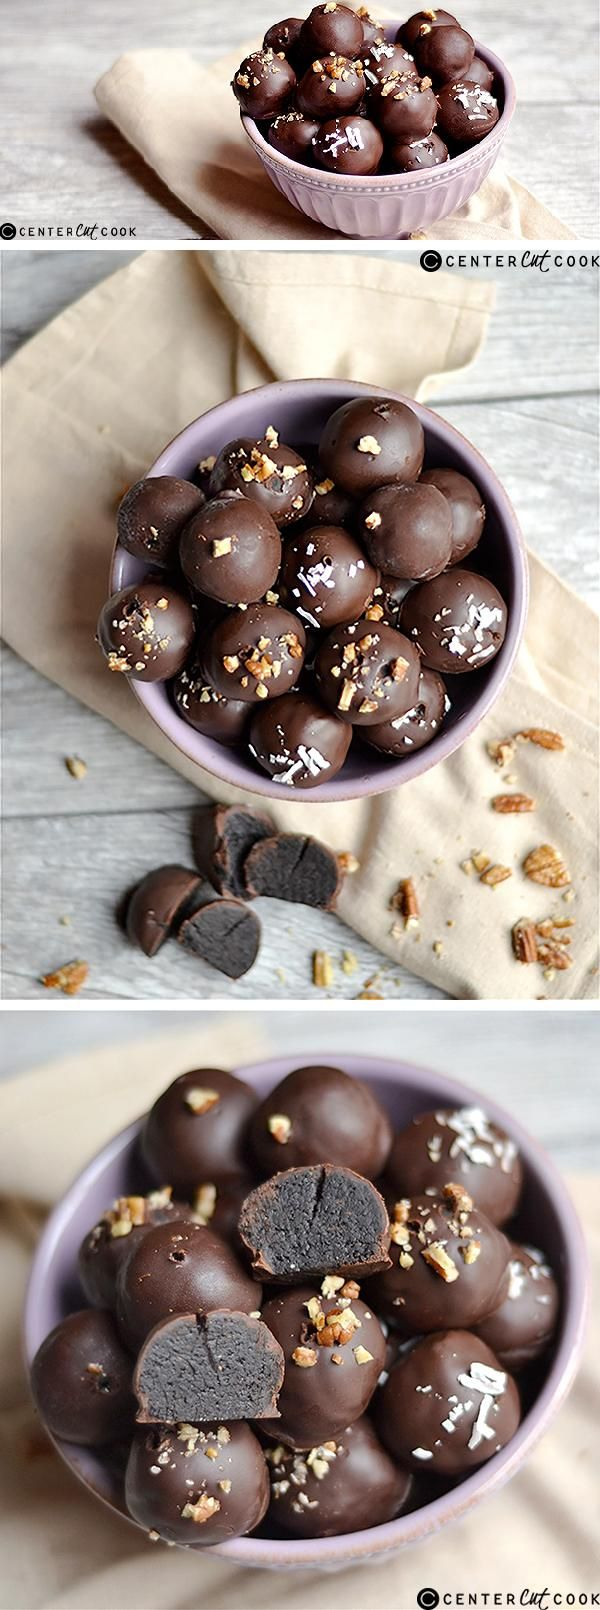 These NO BAKE CHOCOLATE CAKE BATTER TRUFFLES have all the taste of the most indulgent and delicious chocolate cake in a bite sized truffle!! So simple and delicious!